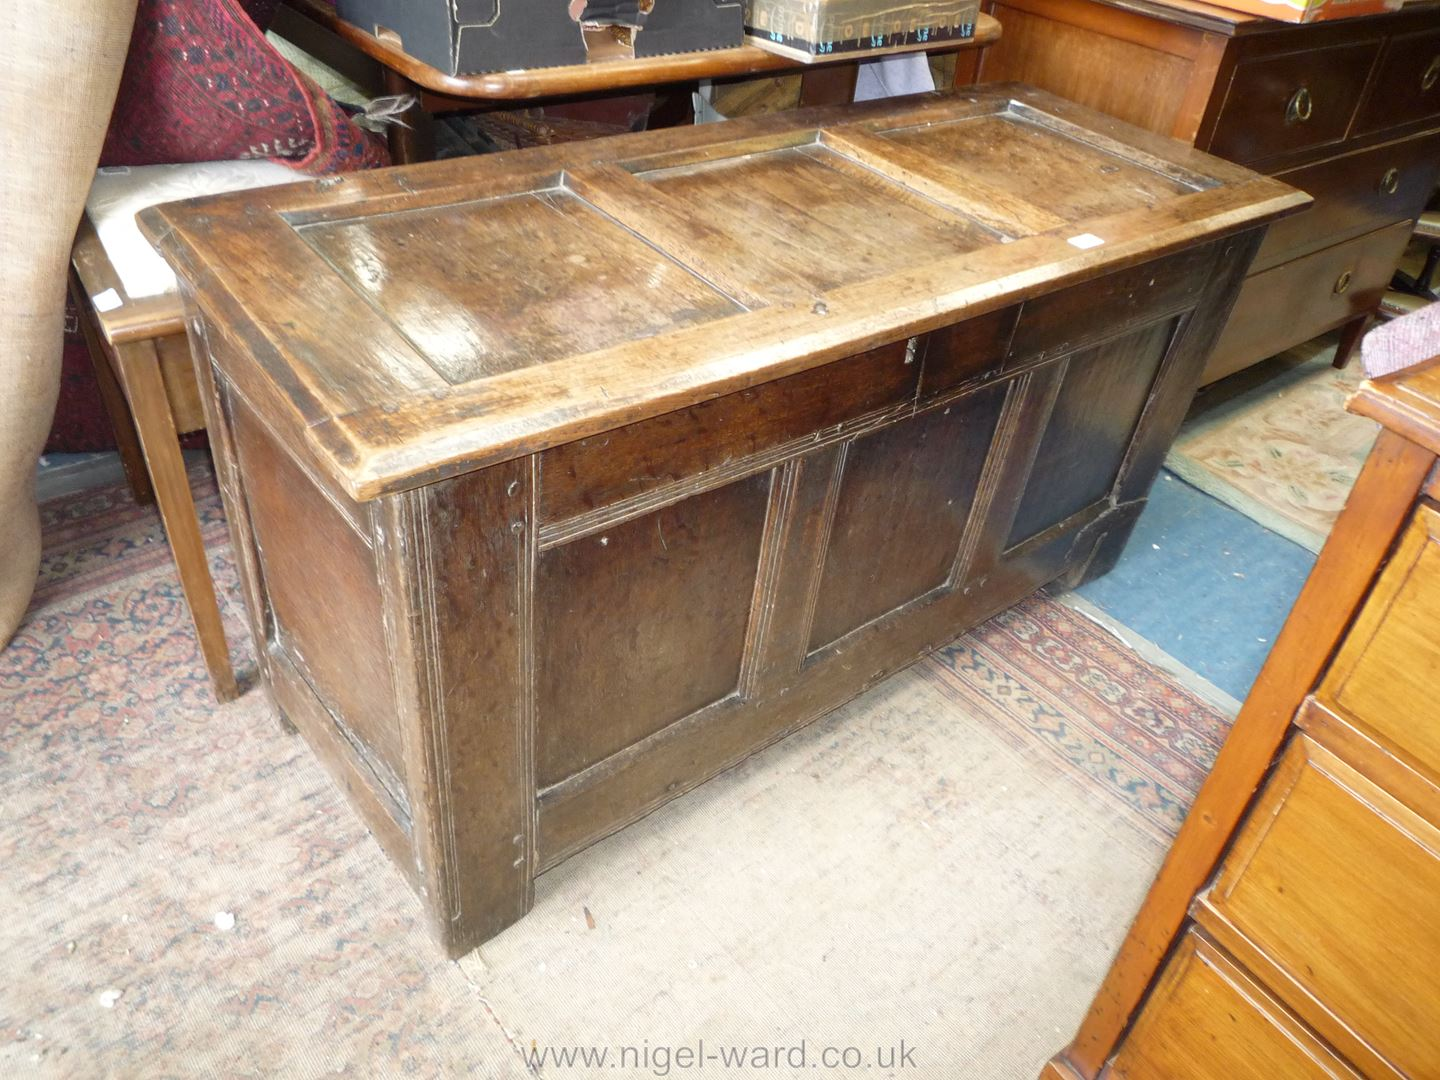 A delightfully plain peg-joined Oak three panel Coffer with scratch-moulded details and old metal